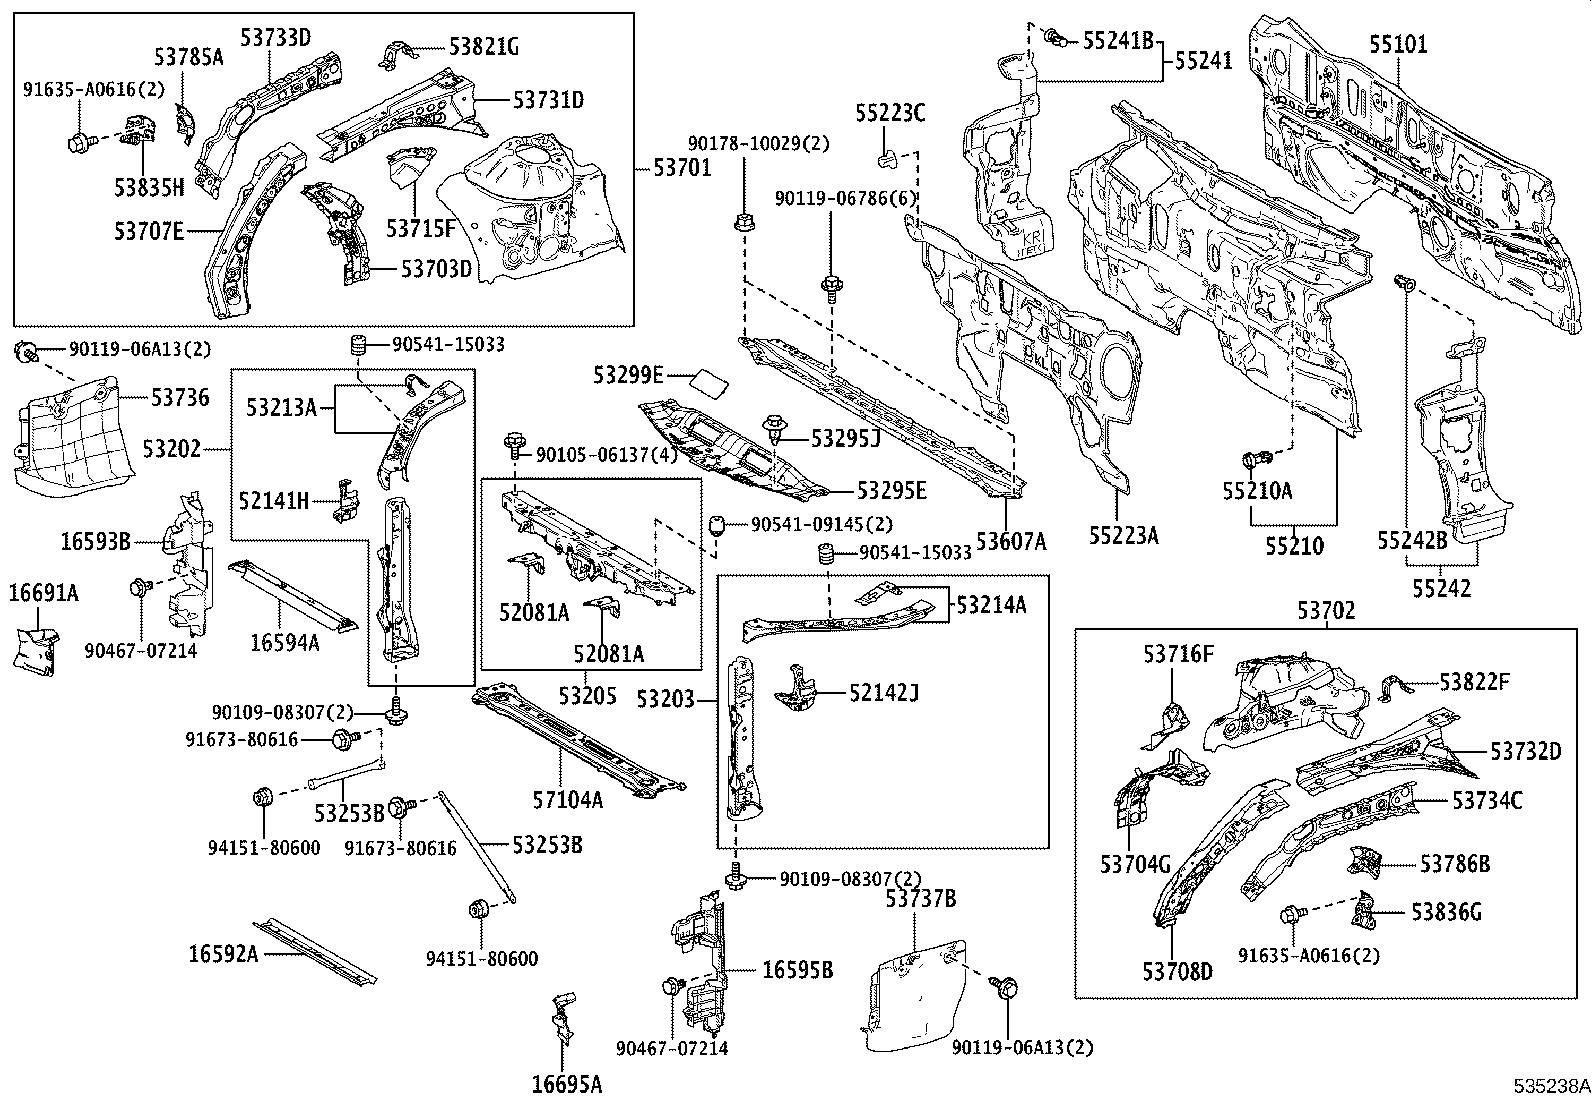 Toyota Camry Member sub-assembly, front cross. Body